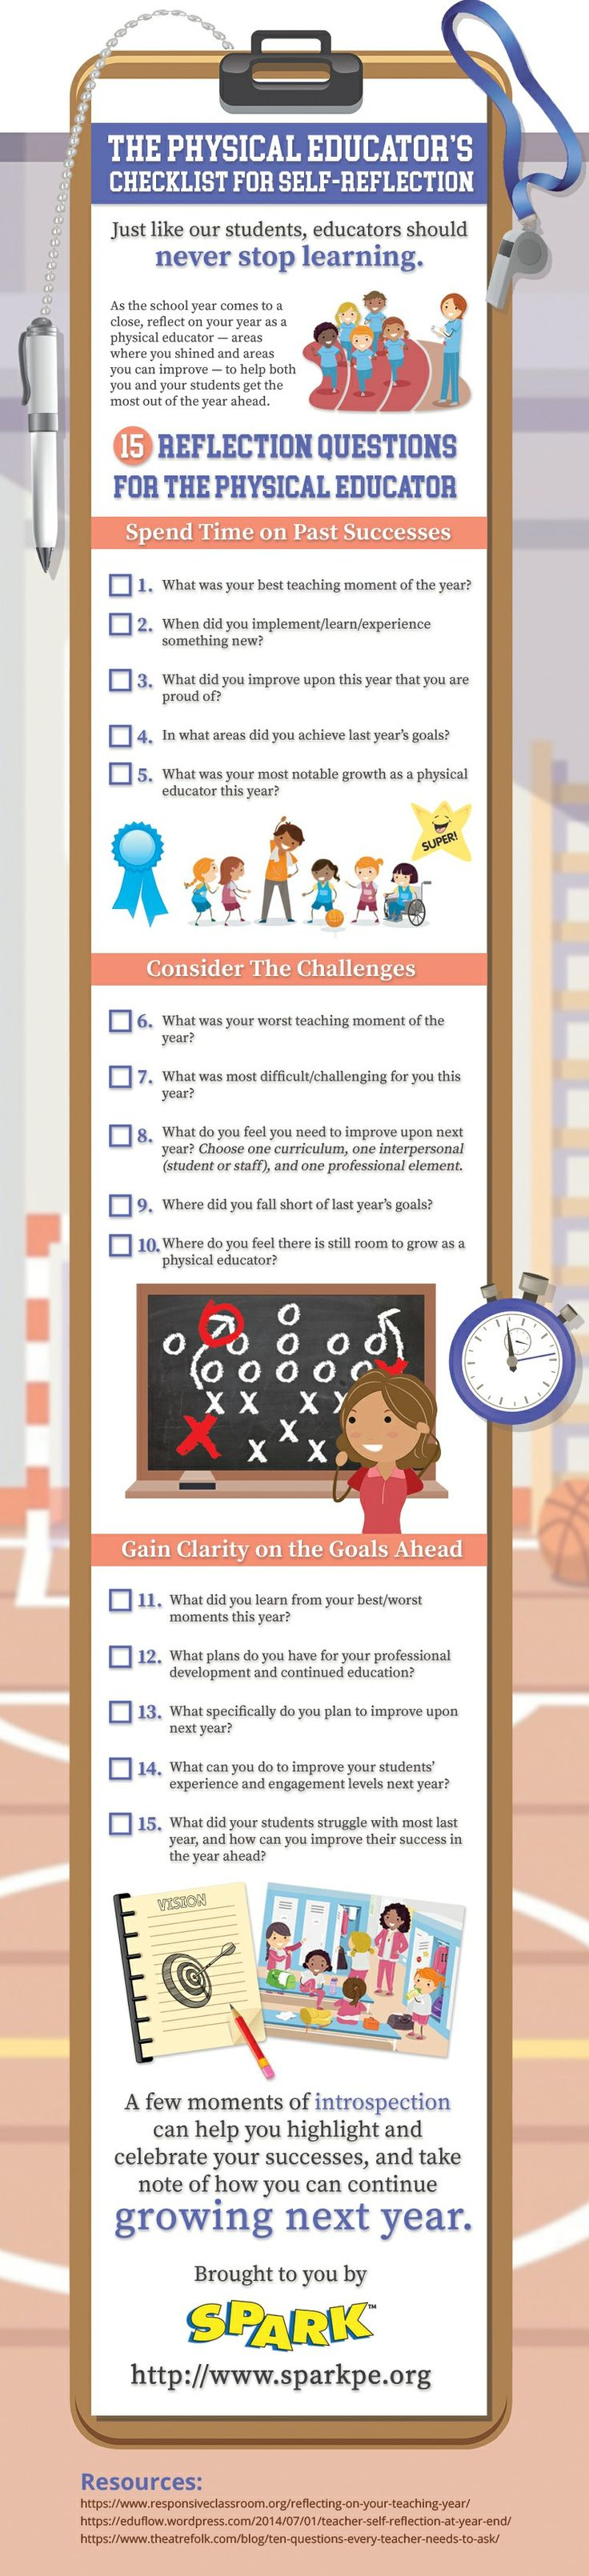 Self-Reflection Questions for the #PhysEd Teacher via @Sportime_SPARK #infographic #PEMATTERS #espechat #PLN #EDU